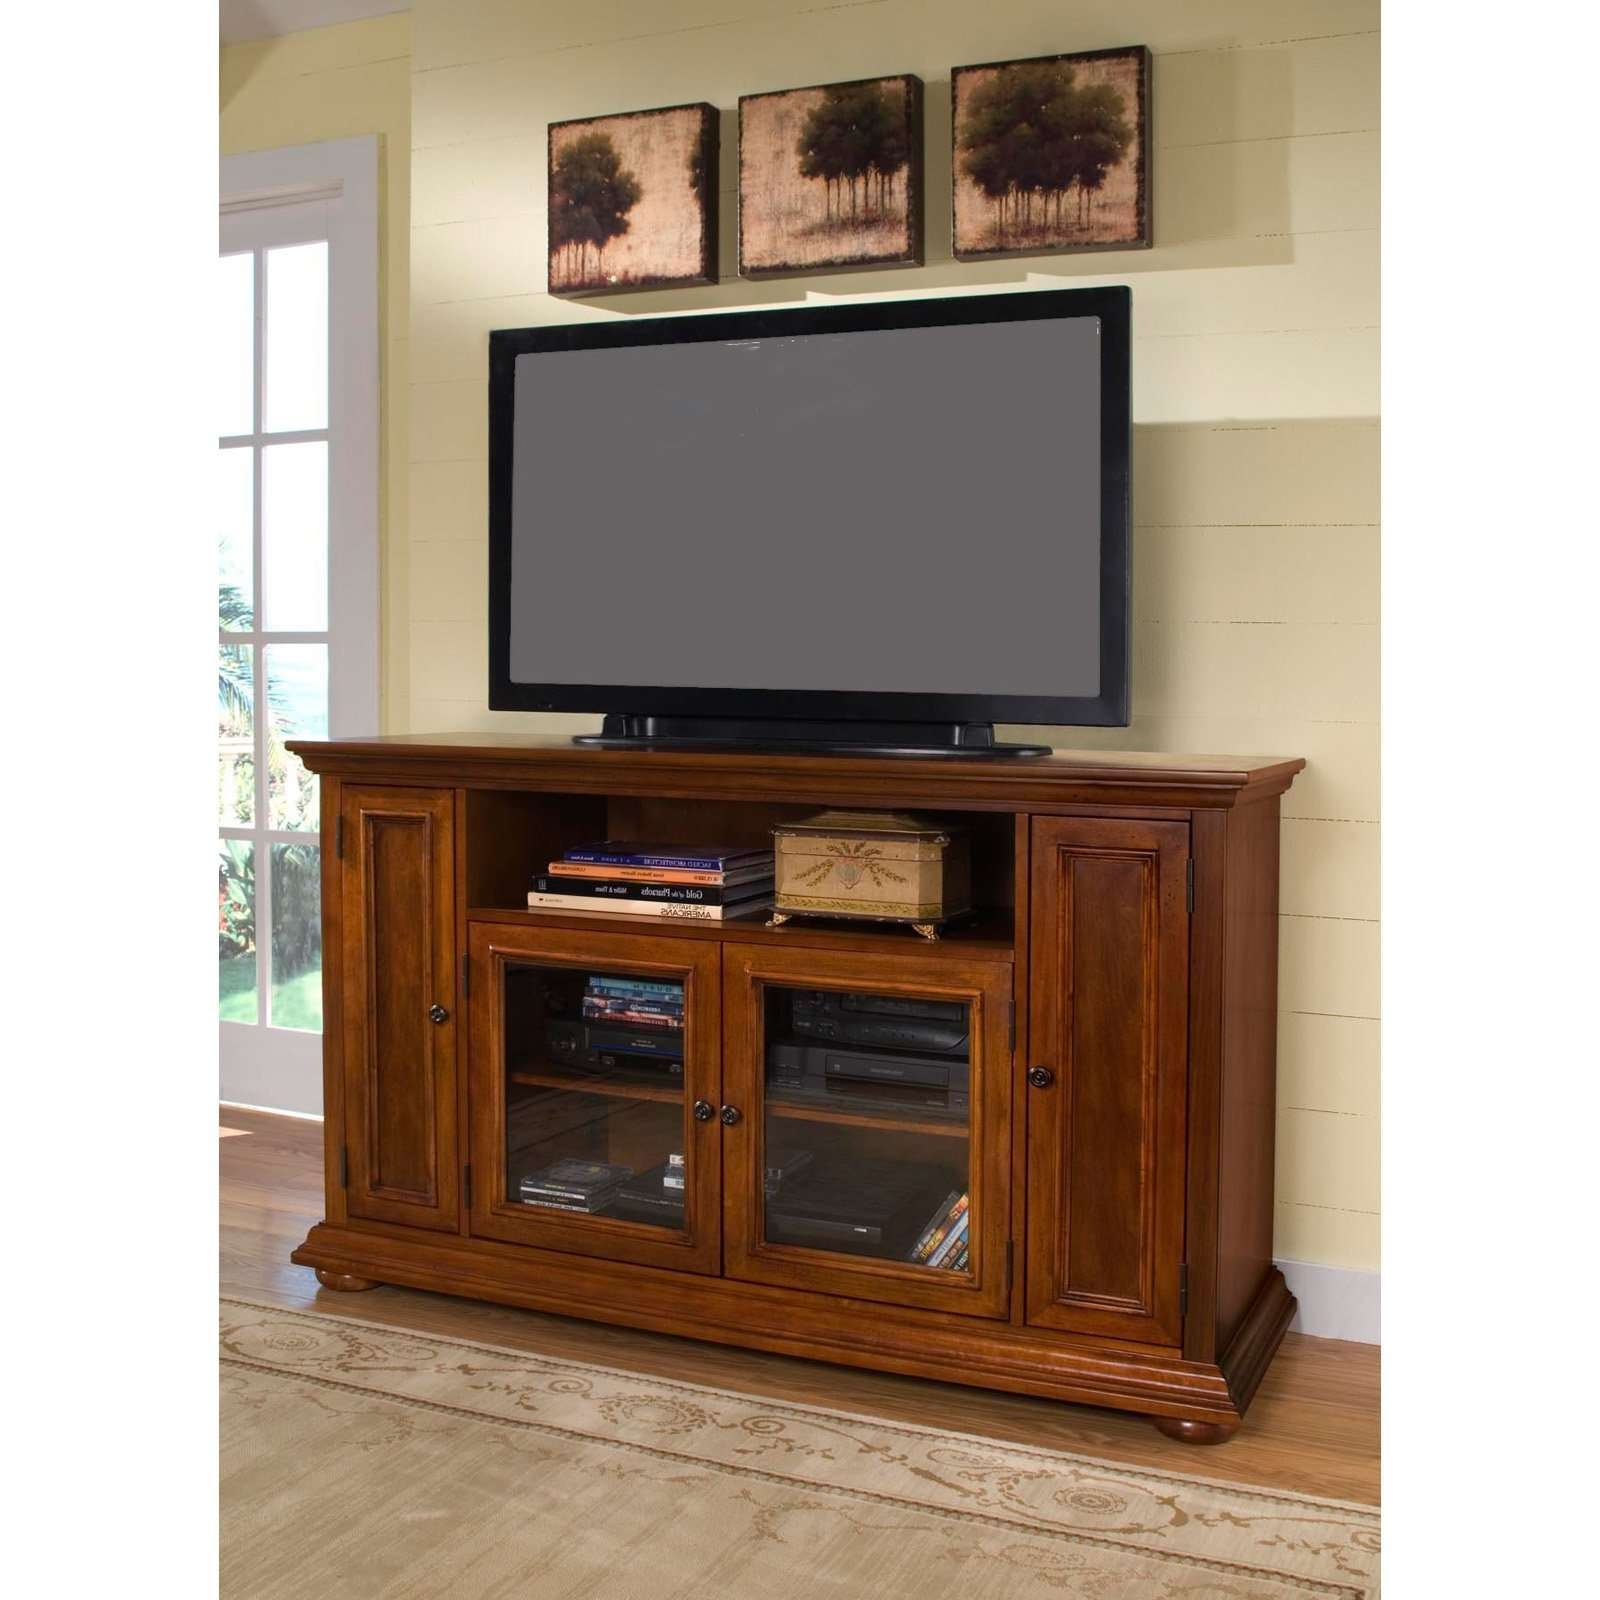 Light Brown Pine Wood Tv Stand With Storage Shelf Of Tall Tv Regarding Pine Wood Tv Stands (View 14 of 15)